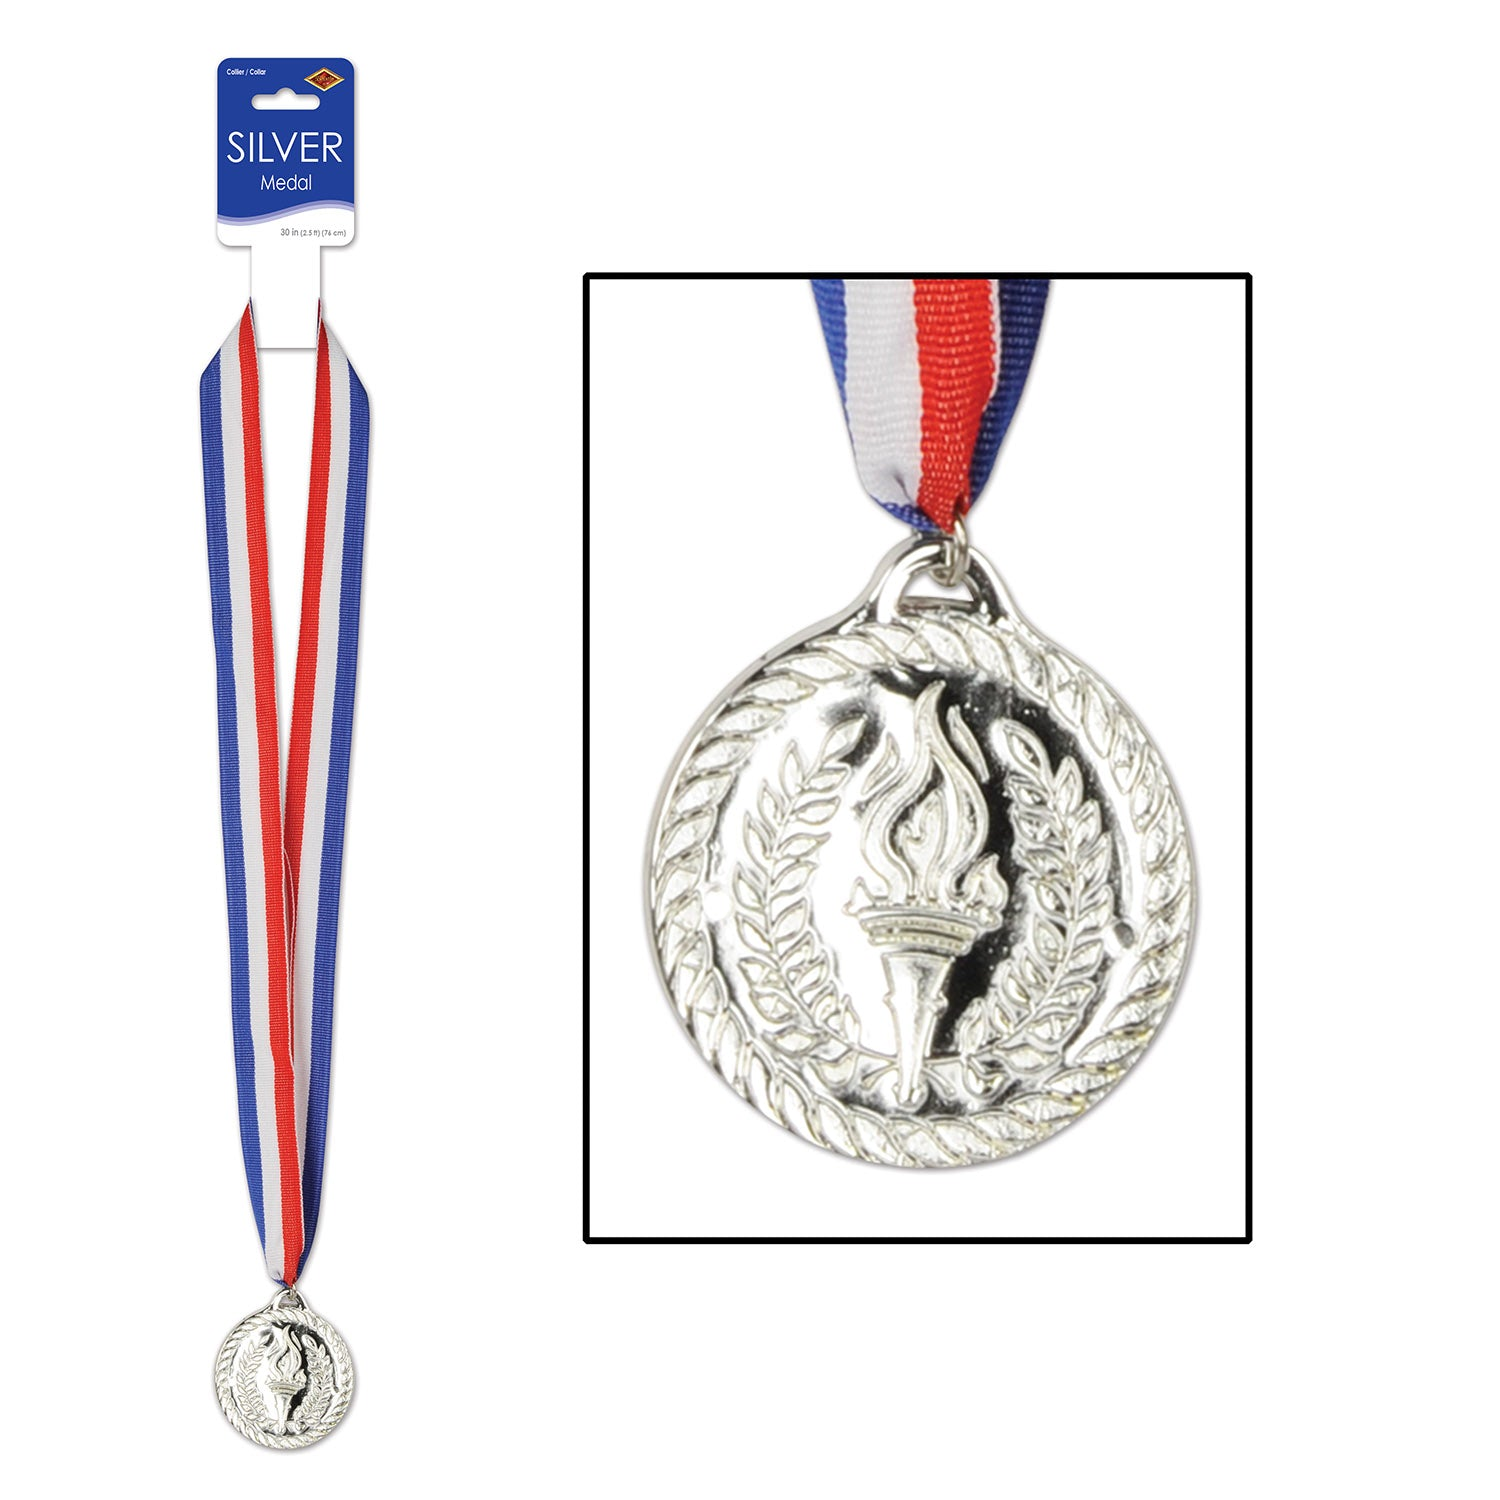 Silver Medal w/Ribbon by Beistle - Sports Theme Decorations